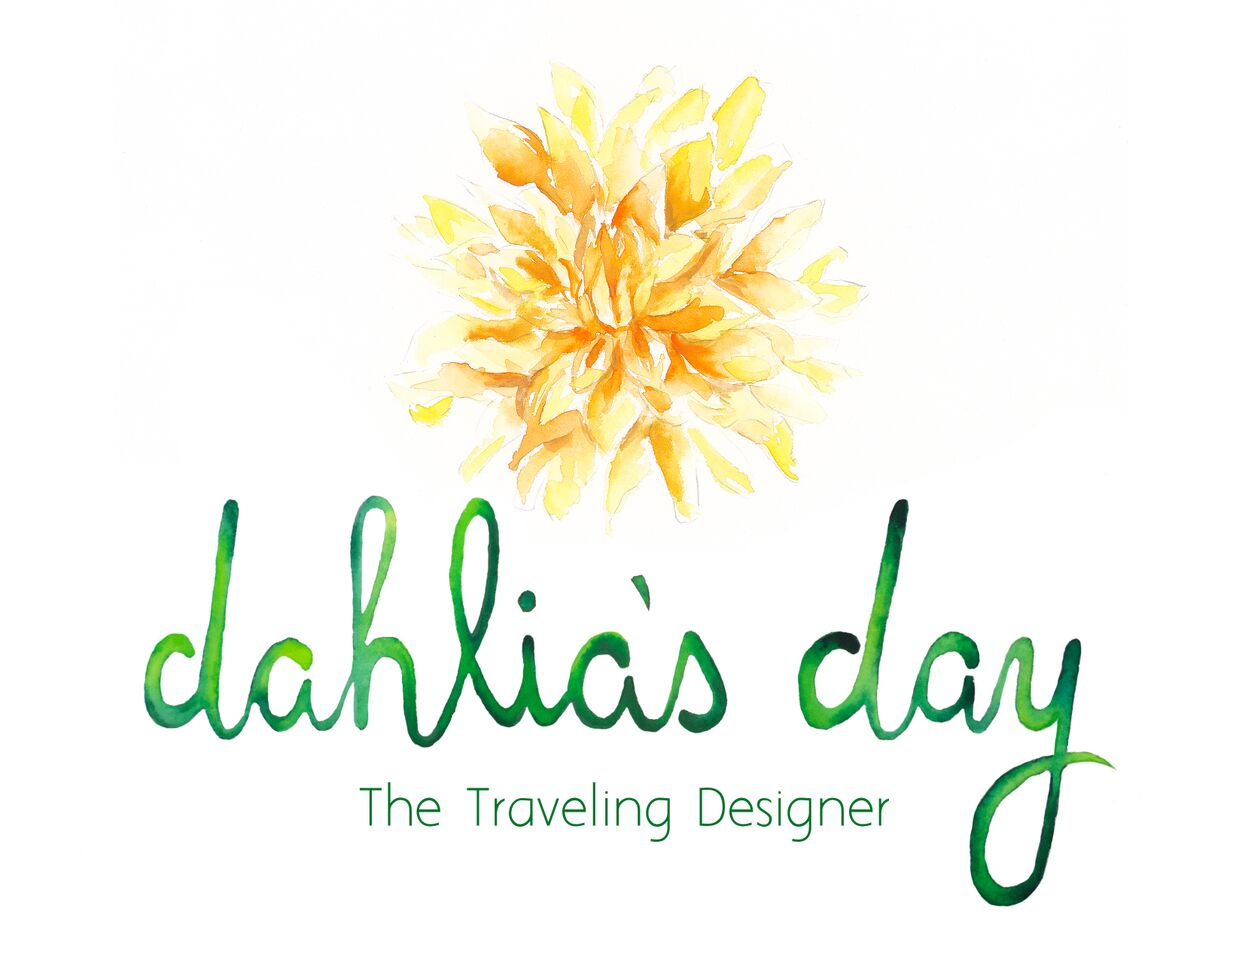 Dahlias Day